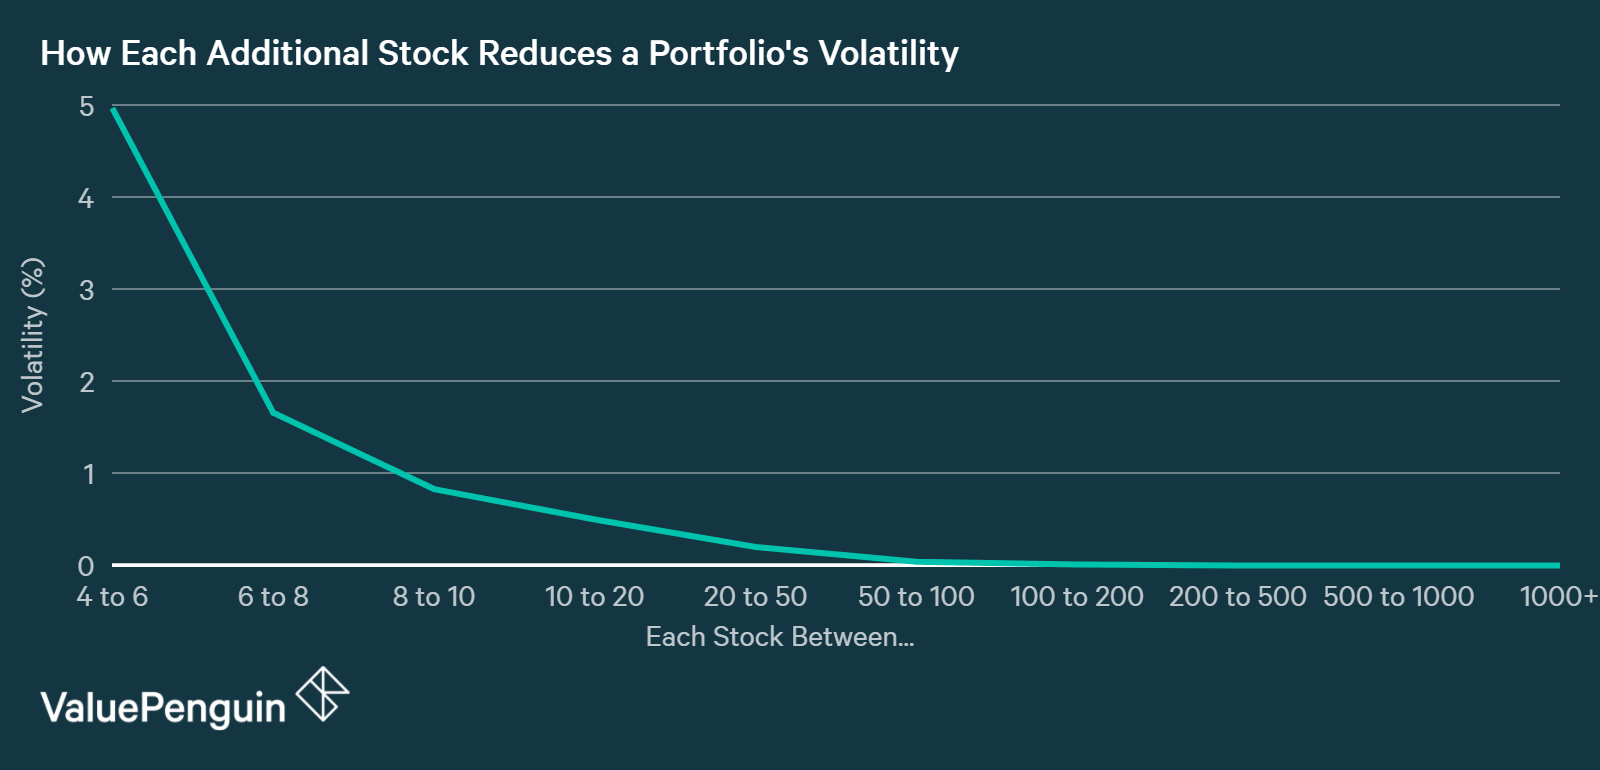 This graph shows the relationship between the number of stocks owned and reduction in volatility